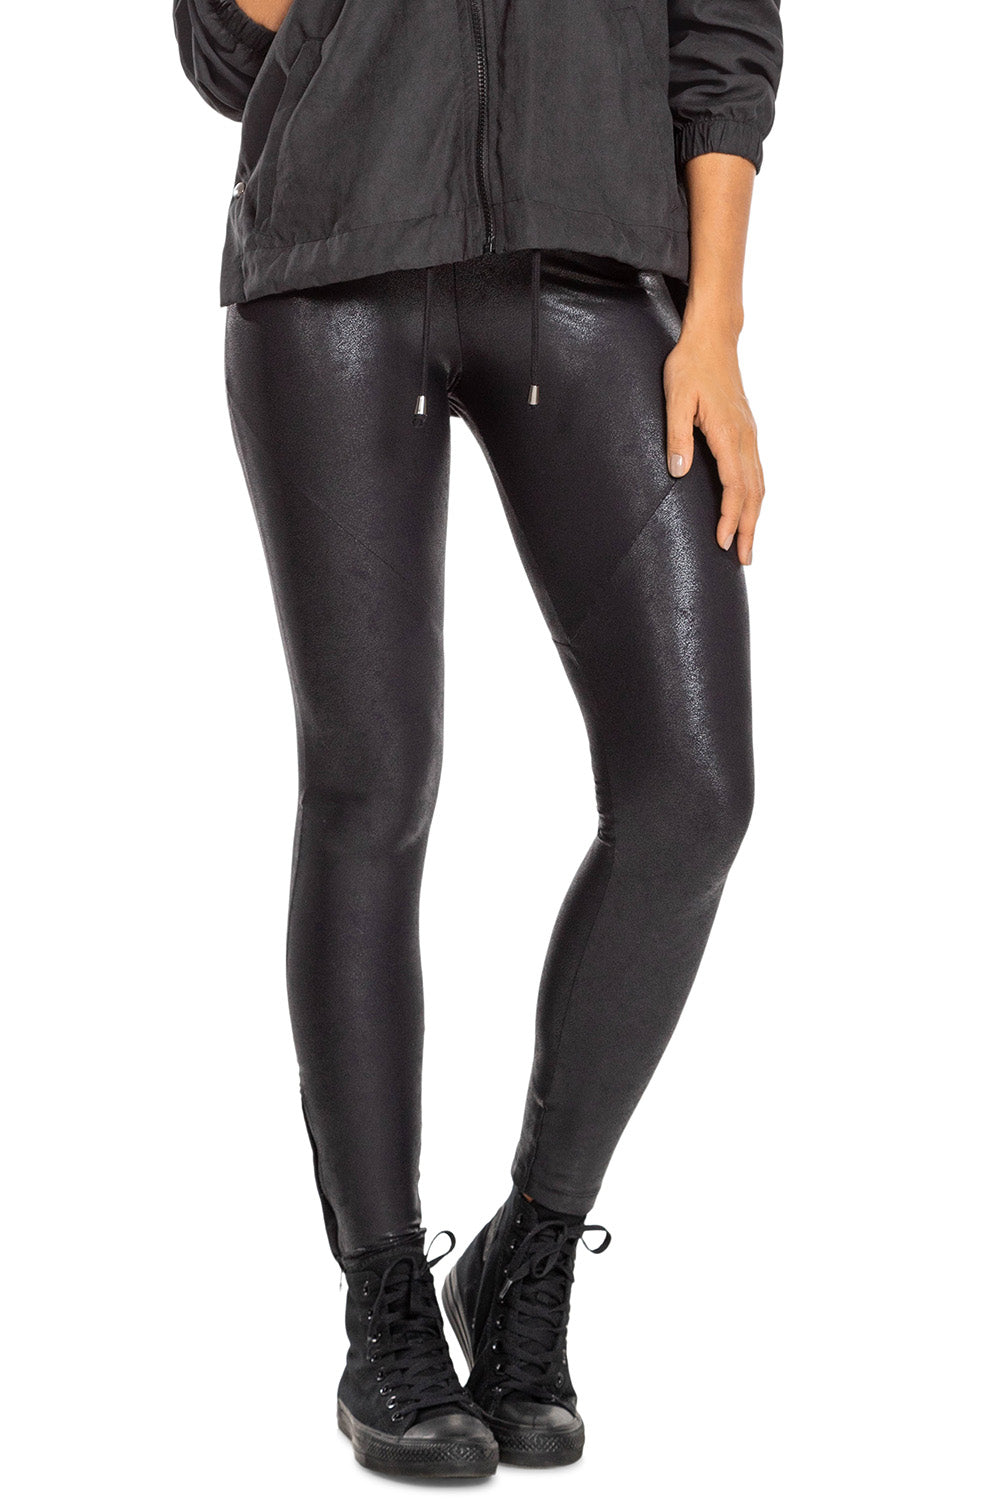 Urban Up Style Tight 1